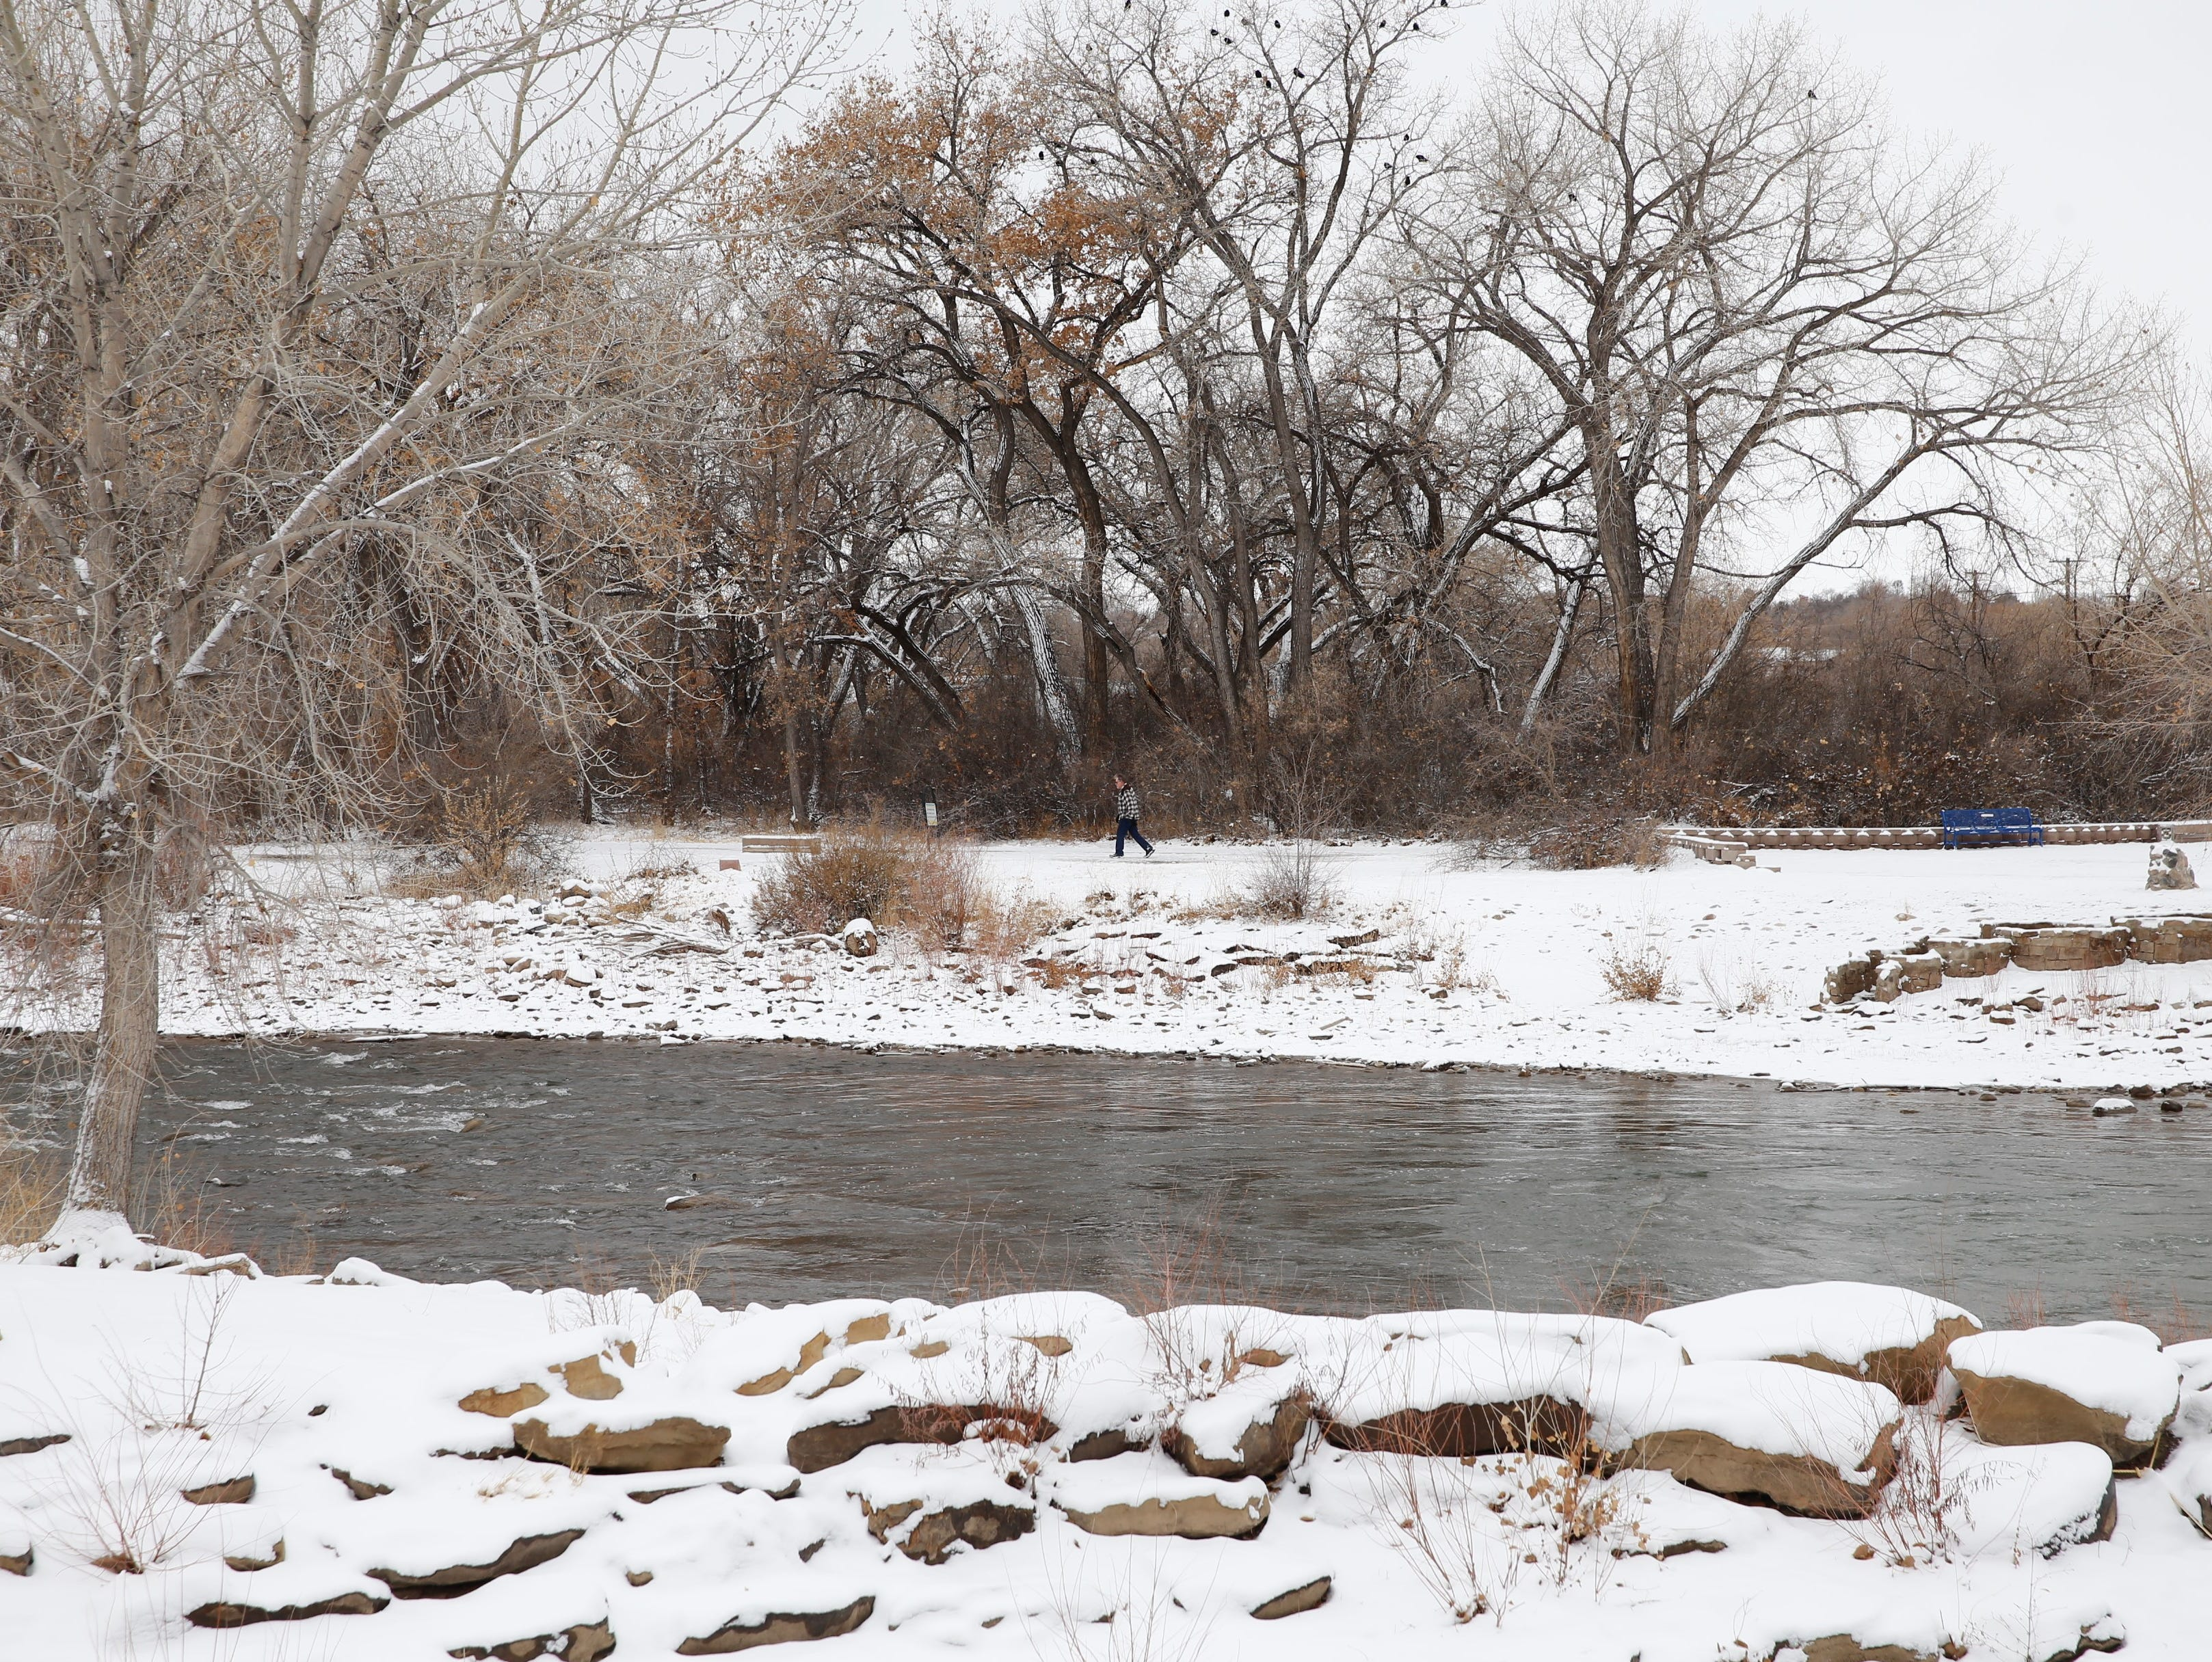 The winter weather on Friday did not stop people from walking the Animas River Trails in Farmington.